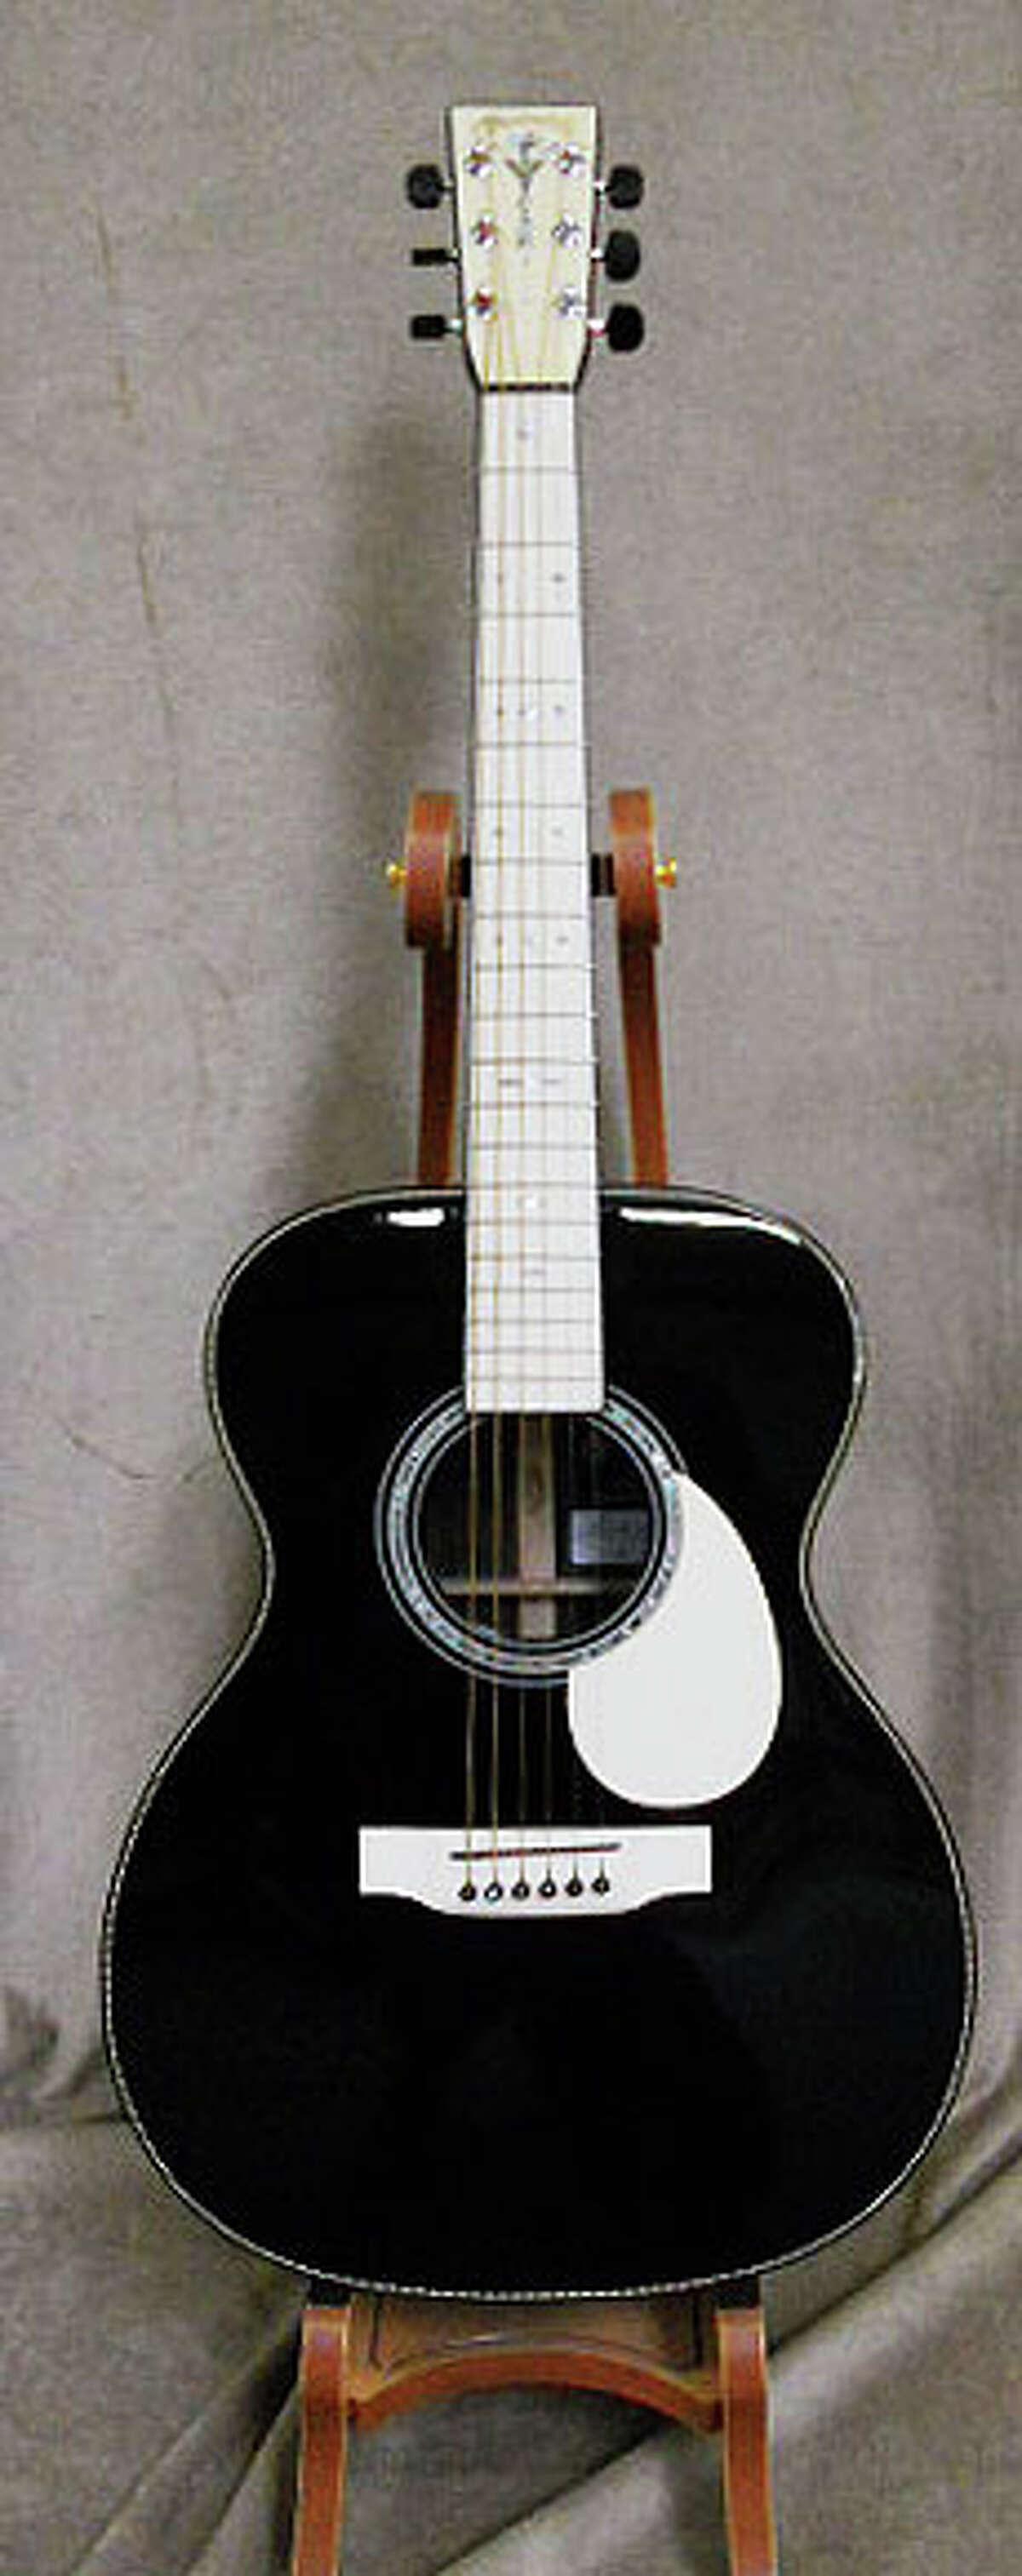 These guitars owned by the late Houston hand surgeon Michael Brown were sold at auction June 1, 2014 for a total of $100,000. The event, the latest in the continuing series of auctions from Brown's estate, included 36 guitars and one ukelele.